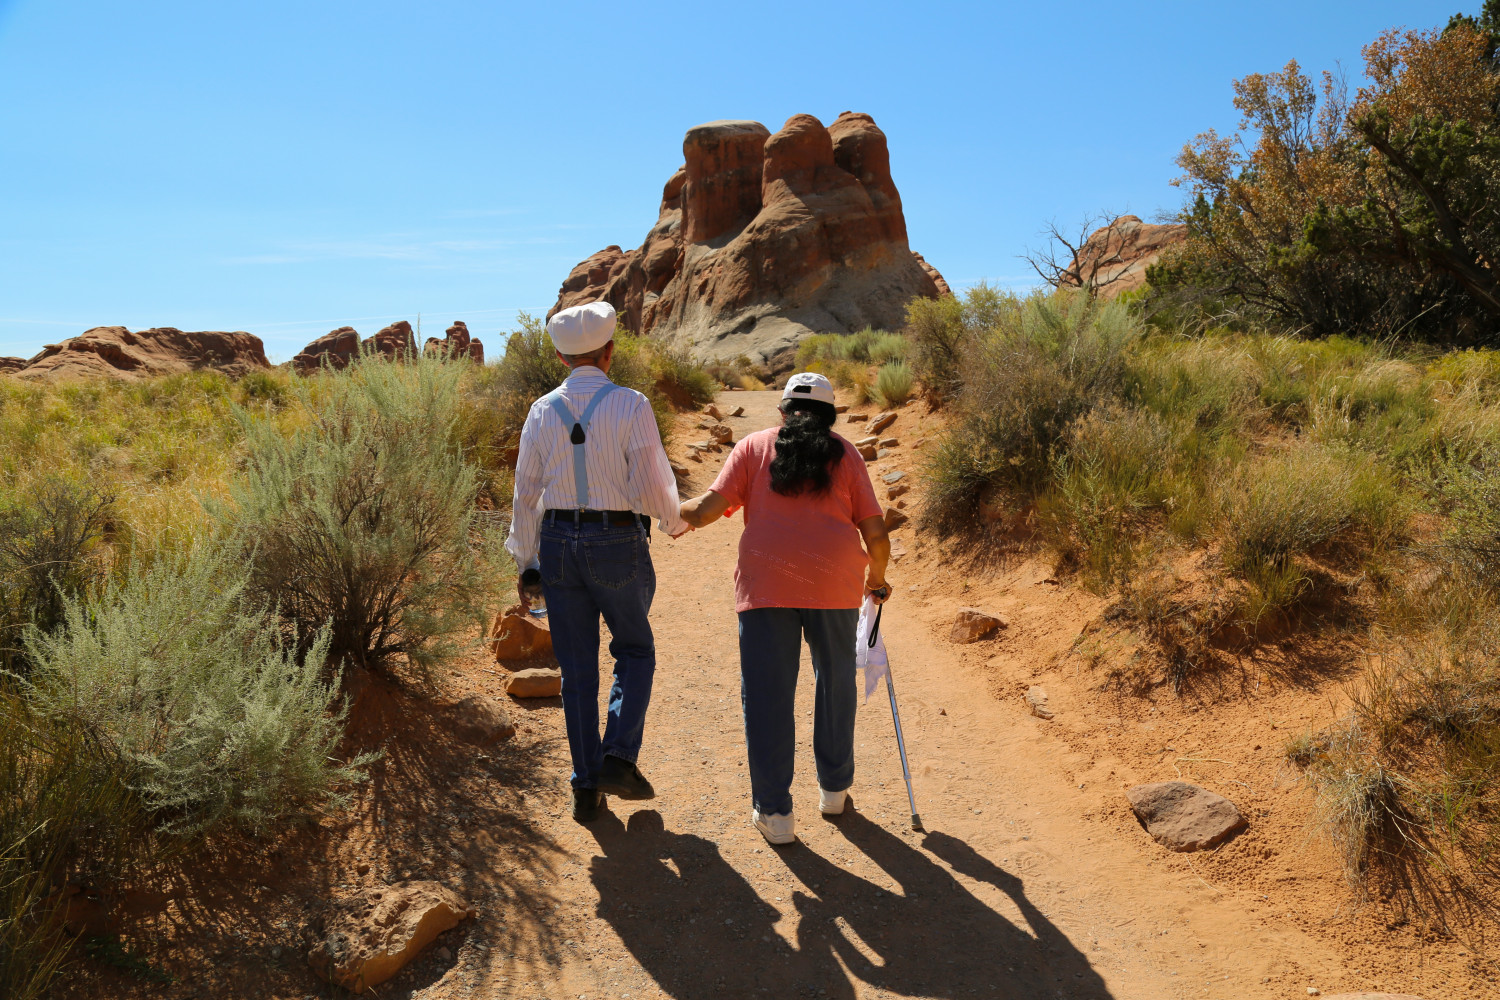 elderly-japanese-tourists-explore-arches-e1454393018548